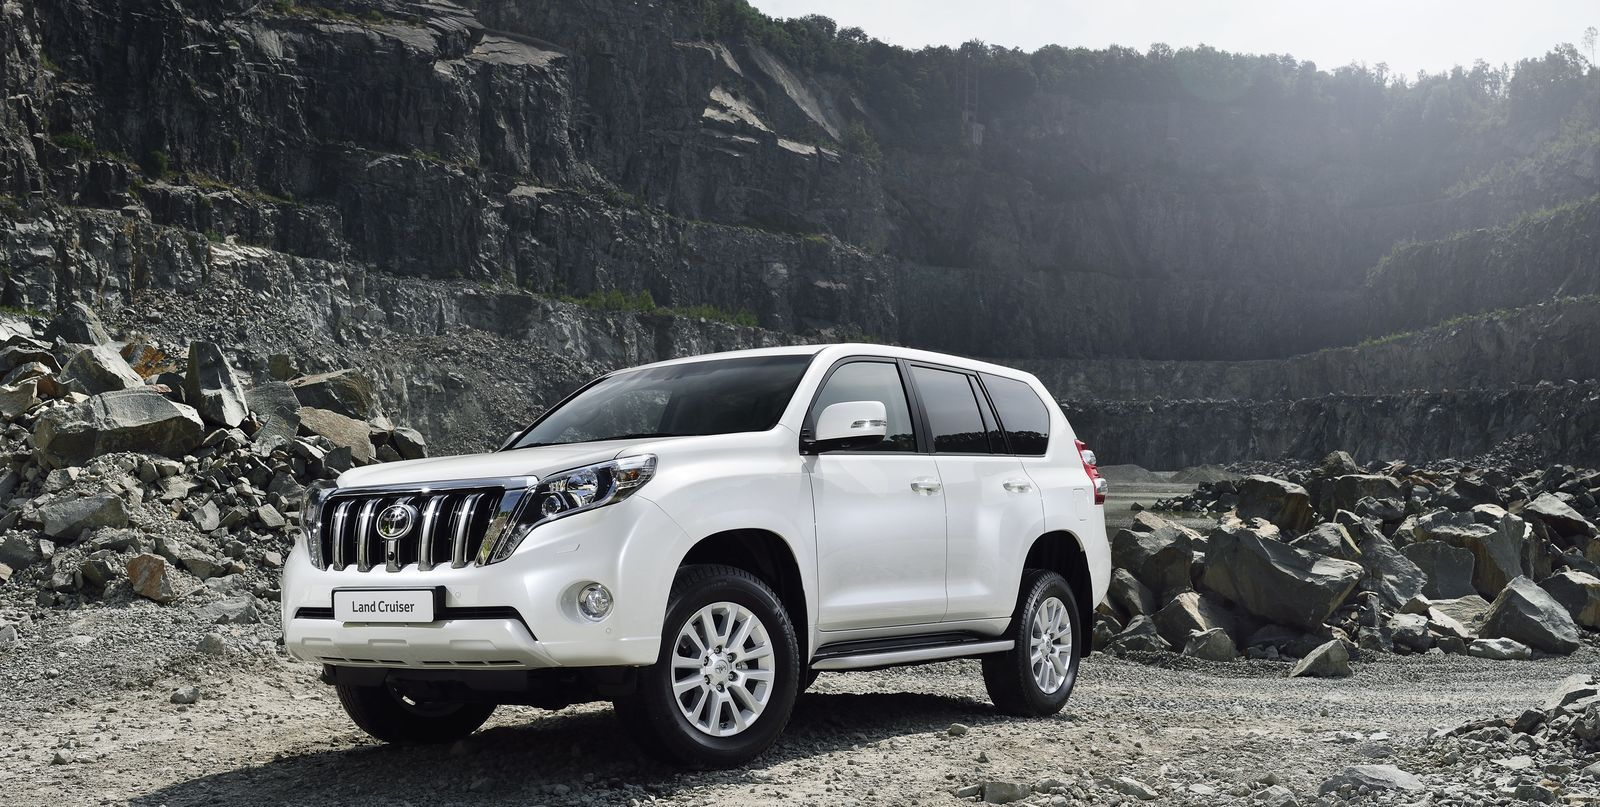 Best 7 Seater SUVs To Buy In 2015 U2013 Our Top 10 | Carwow